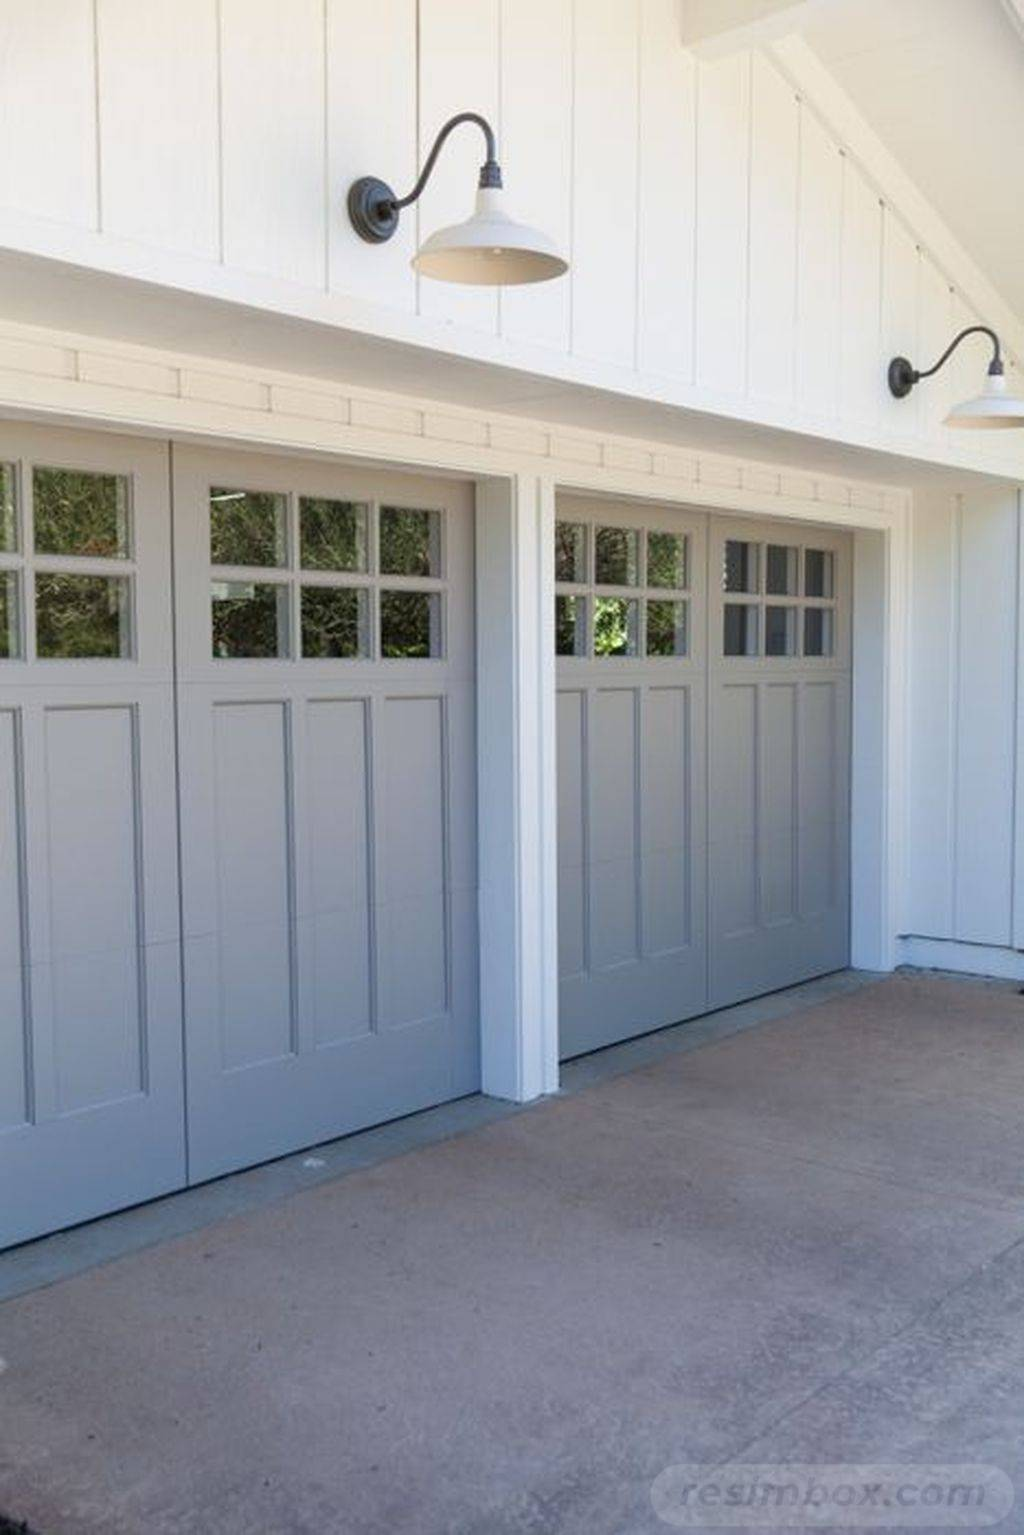 garden garage ideas-647673990143549388